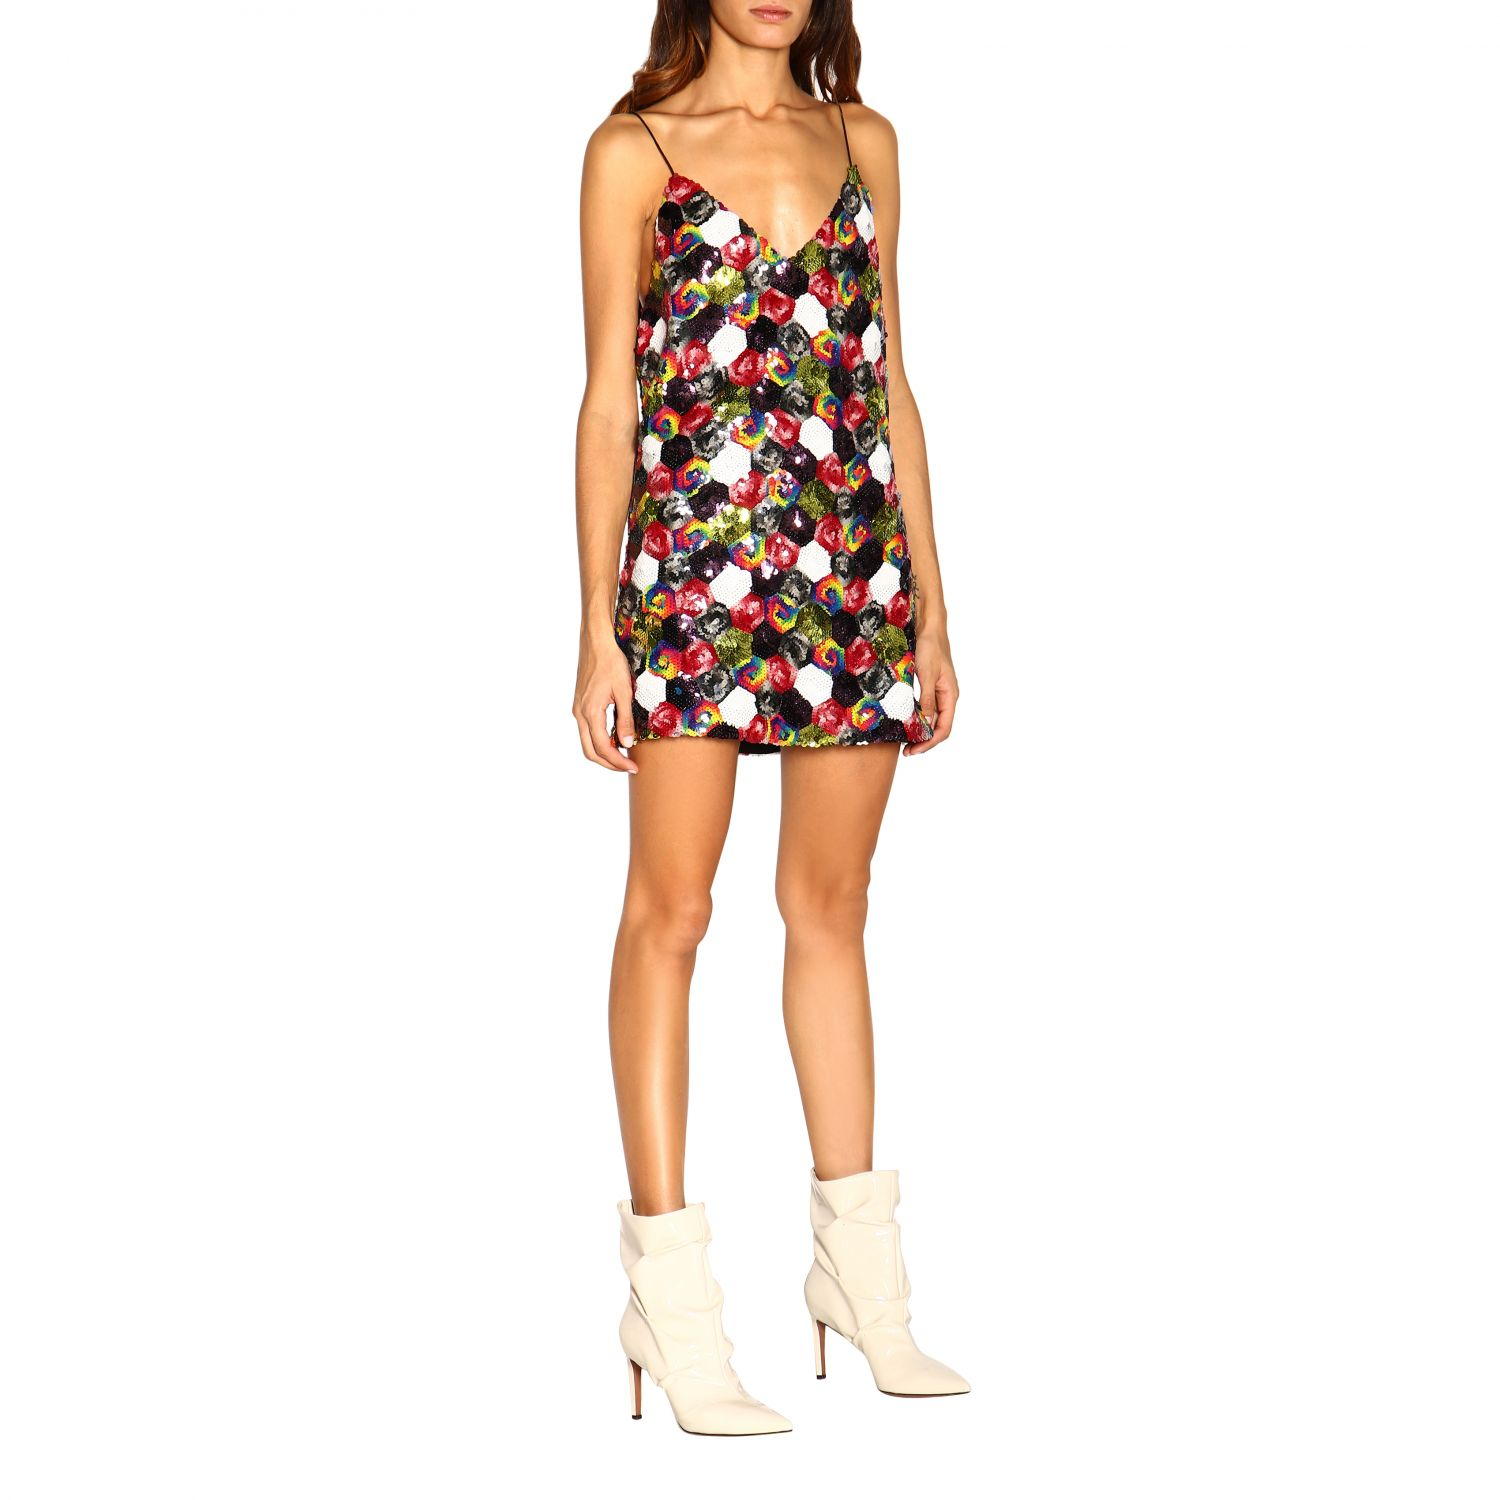 Robes femme Rotate multicolore 1